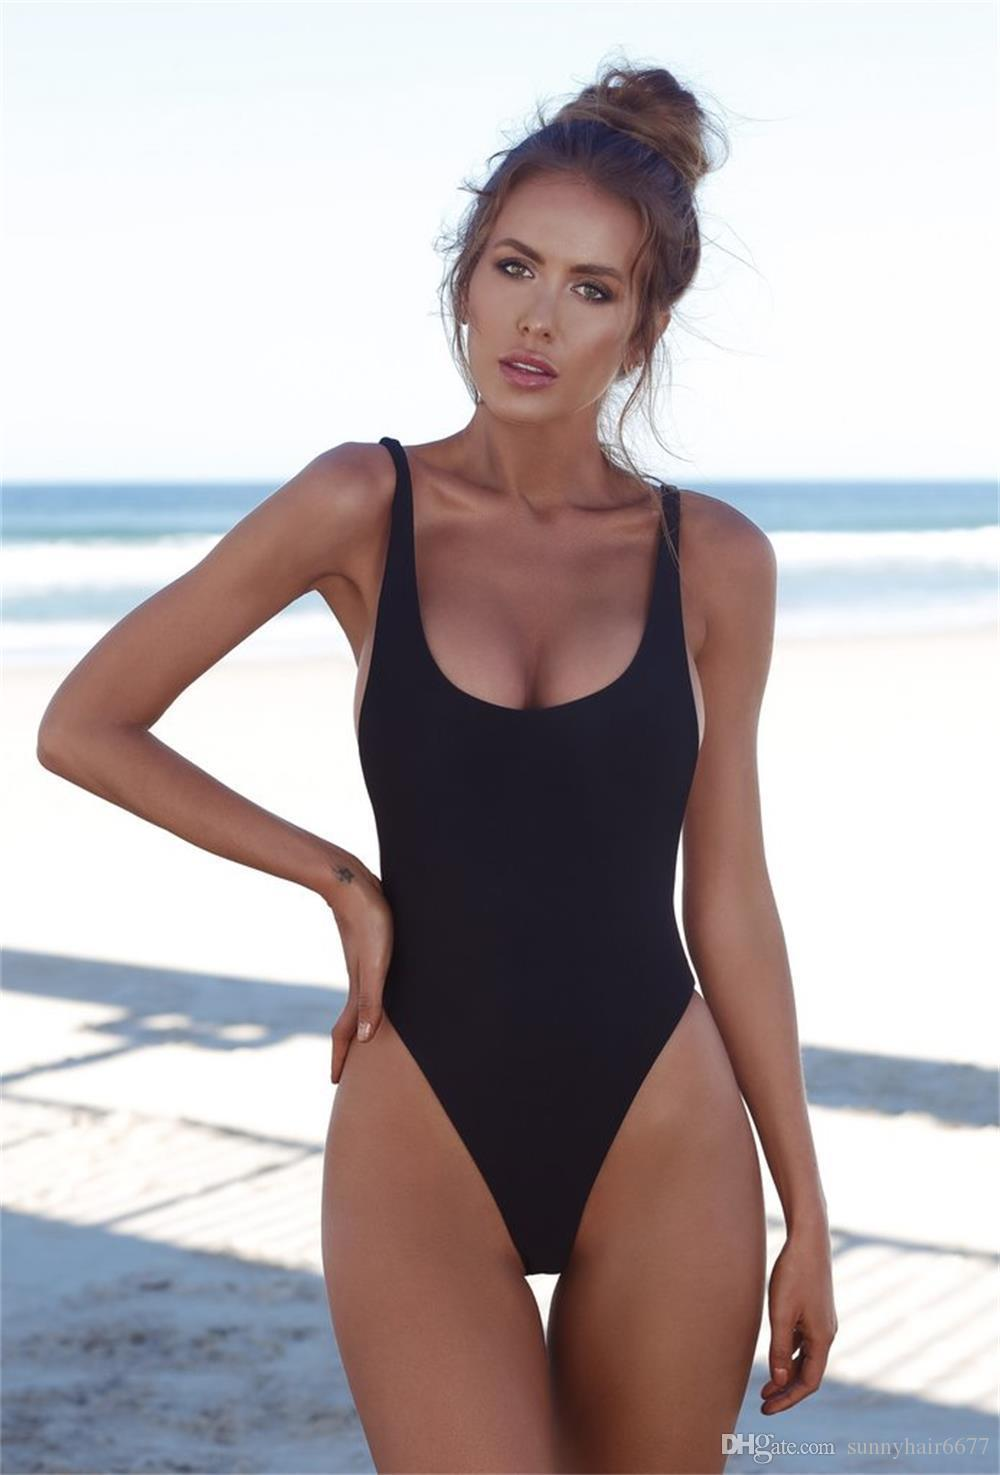 8576f40c7b312 2018 One Piece Swimsuits Sexy Solid Women Bathing Suits Backless Swimwear  Female Biquini Summer Beach Wear 937 Bikines Bikinis Bikini Women Online  with ...